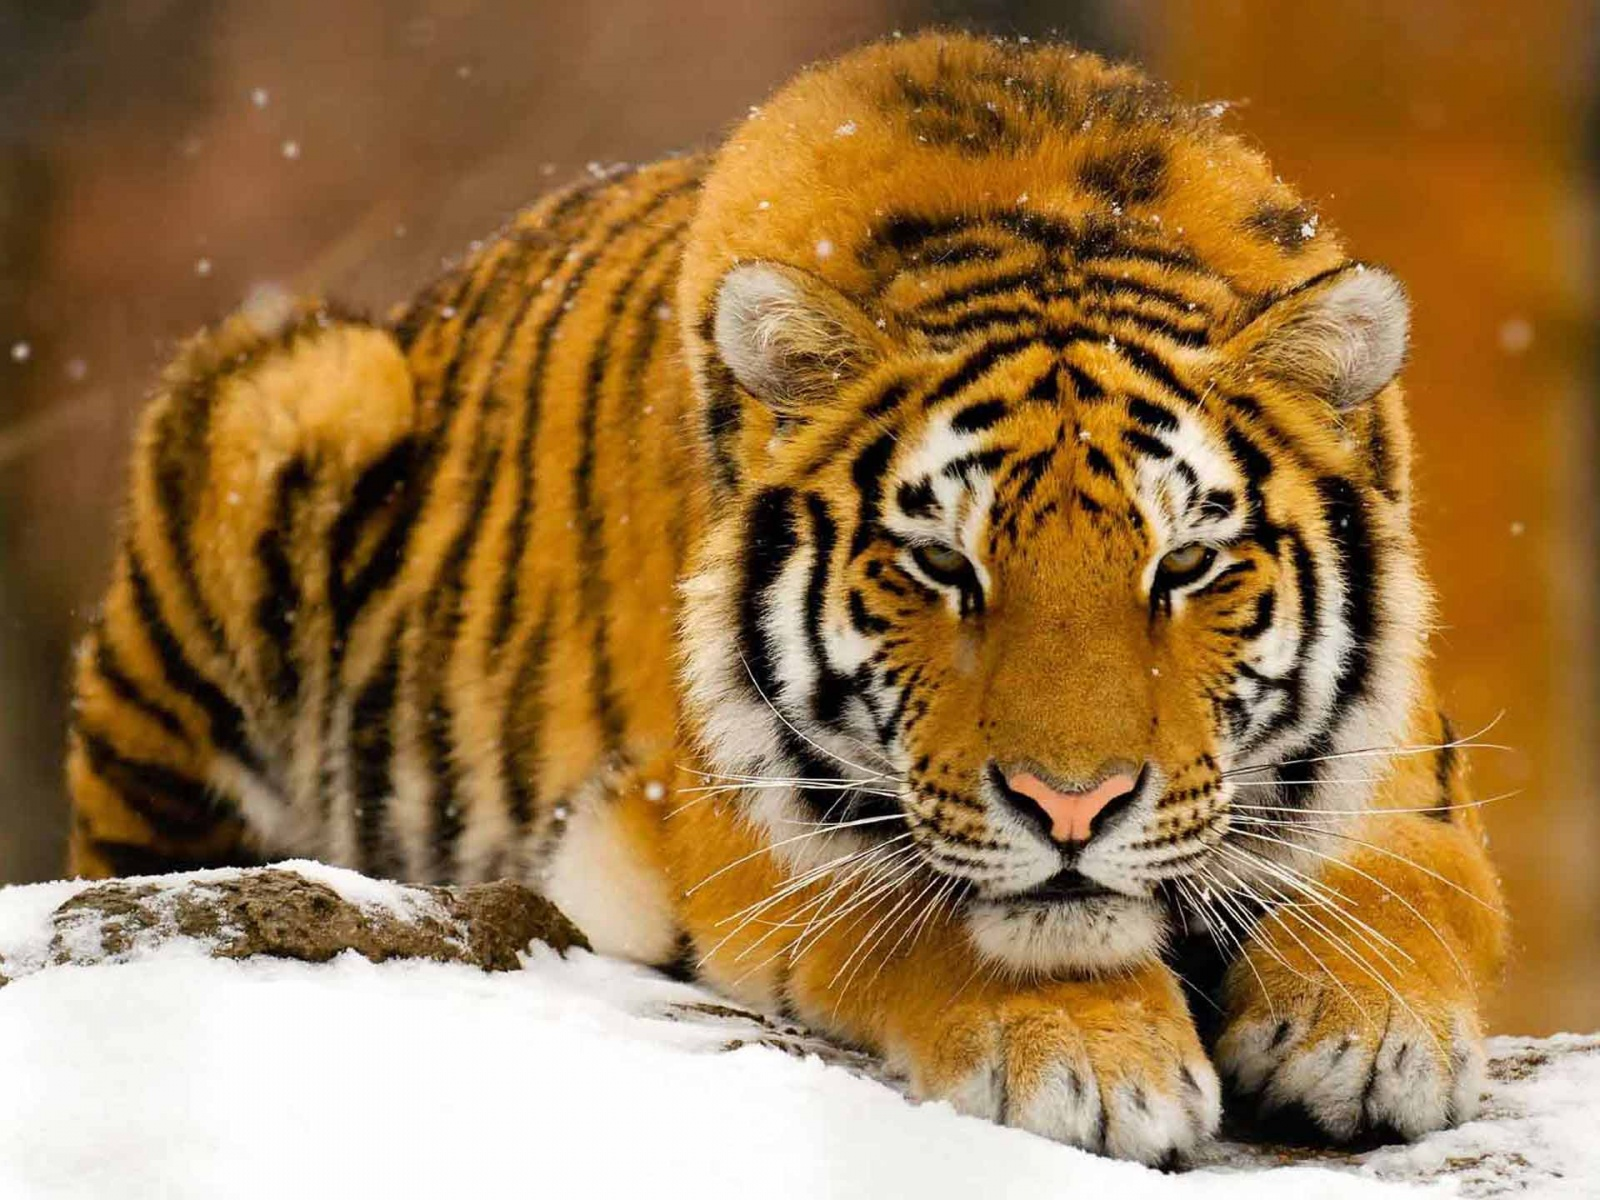 tiger wallpapers desktop hd photo images 21